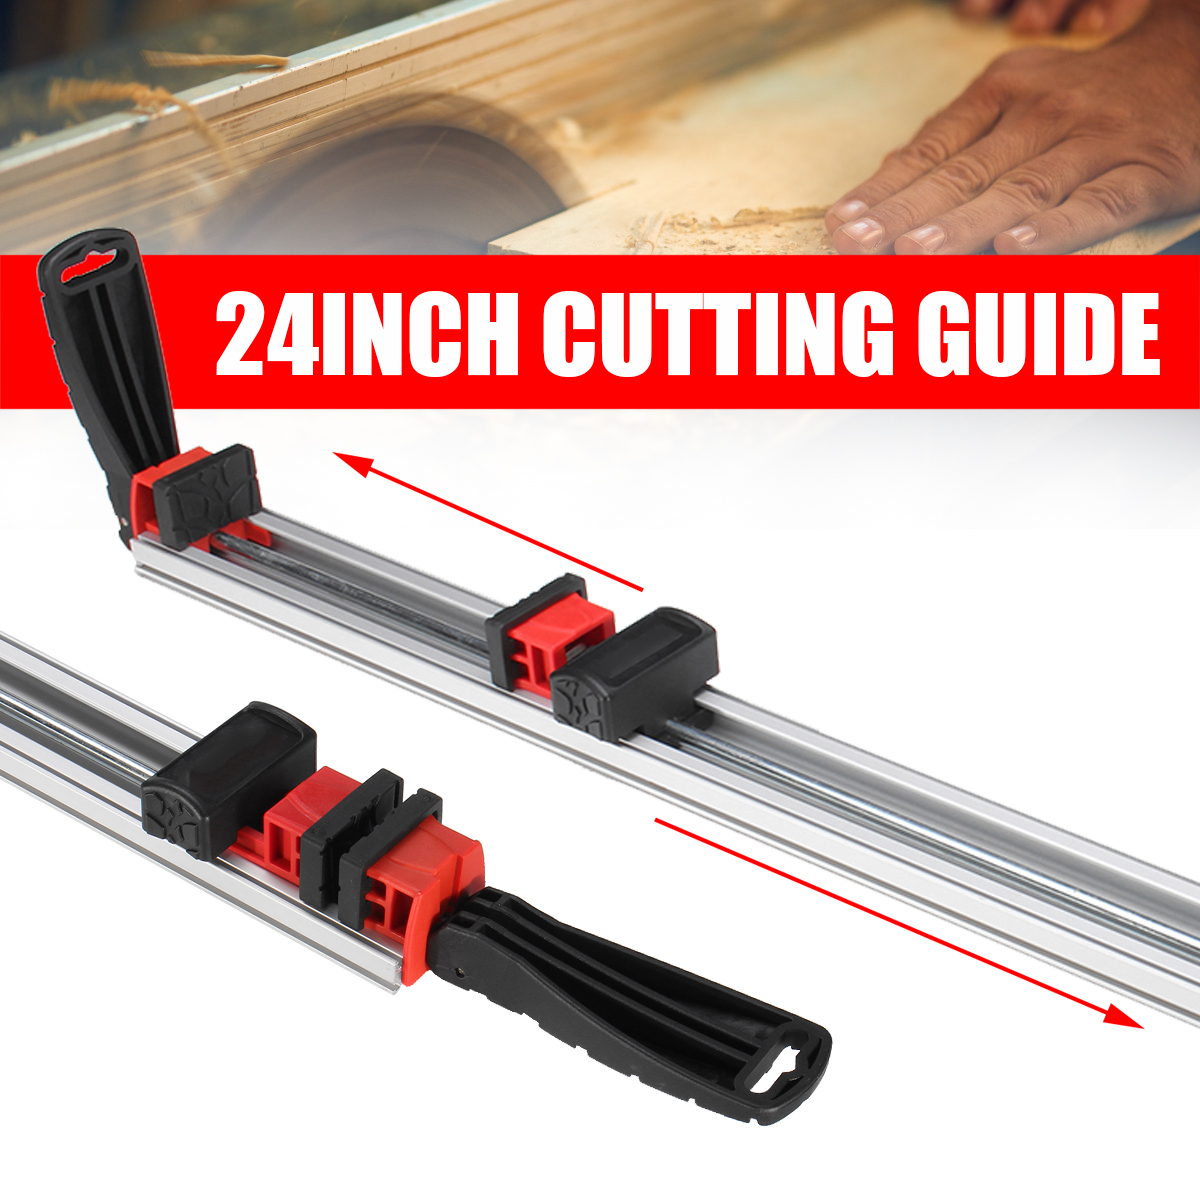 24 Inch Wood Gauge Clamp Woodworking Cutting Guide Aluminum Alloy Grip Straight Edge For Straight Wood Cutting Table Saw Guide